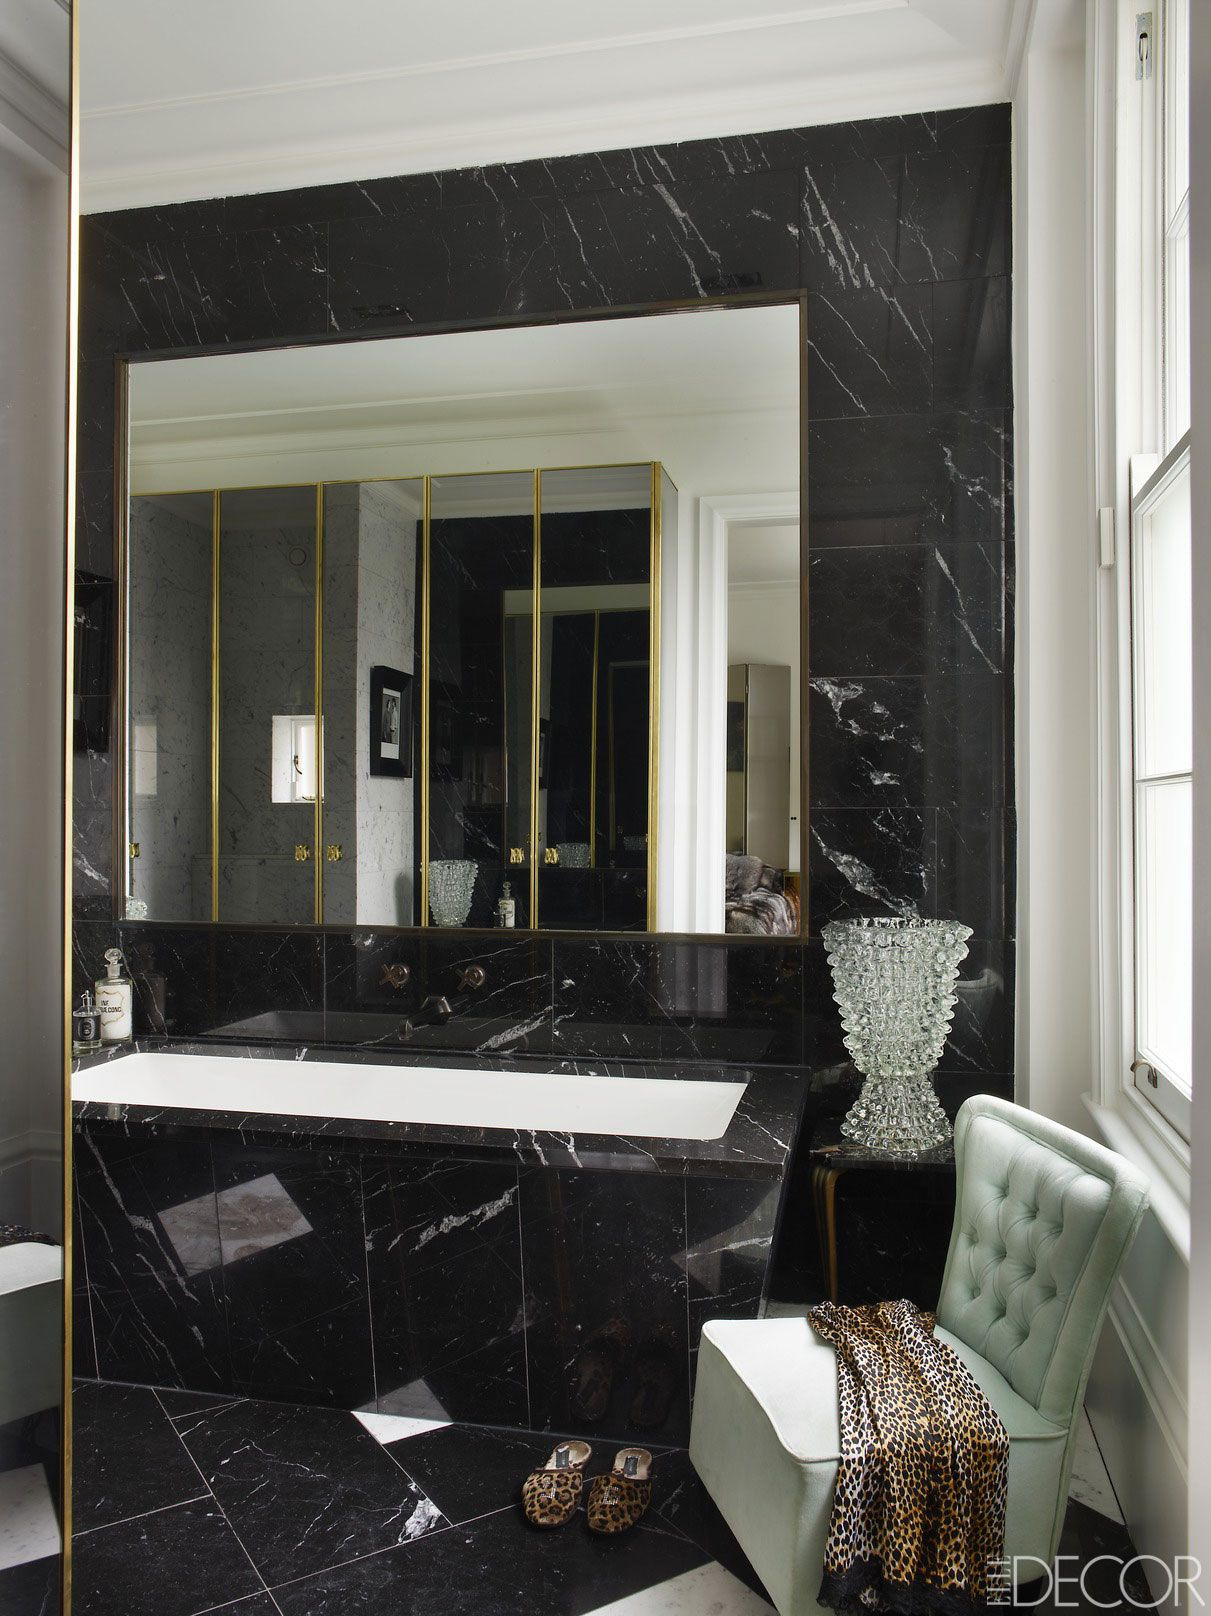 30 Black and White Bathroom Decor & Design Ideas